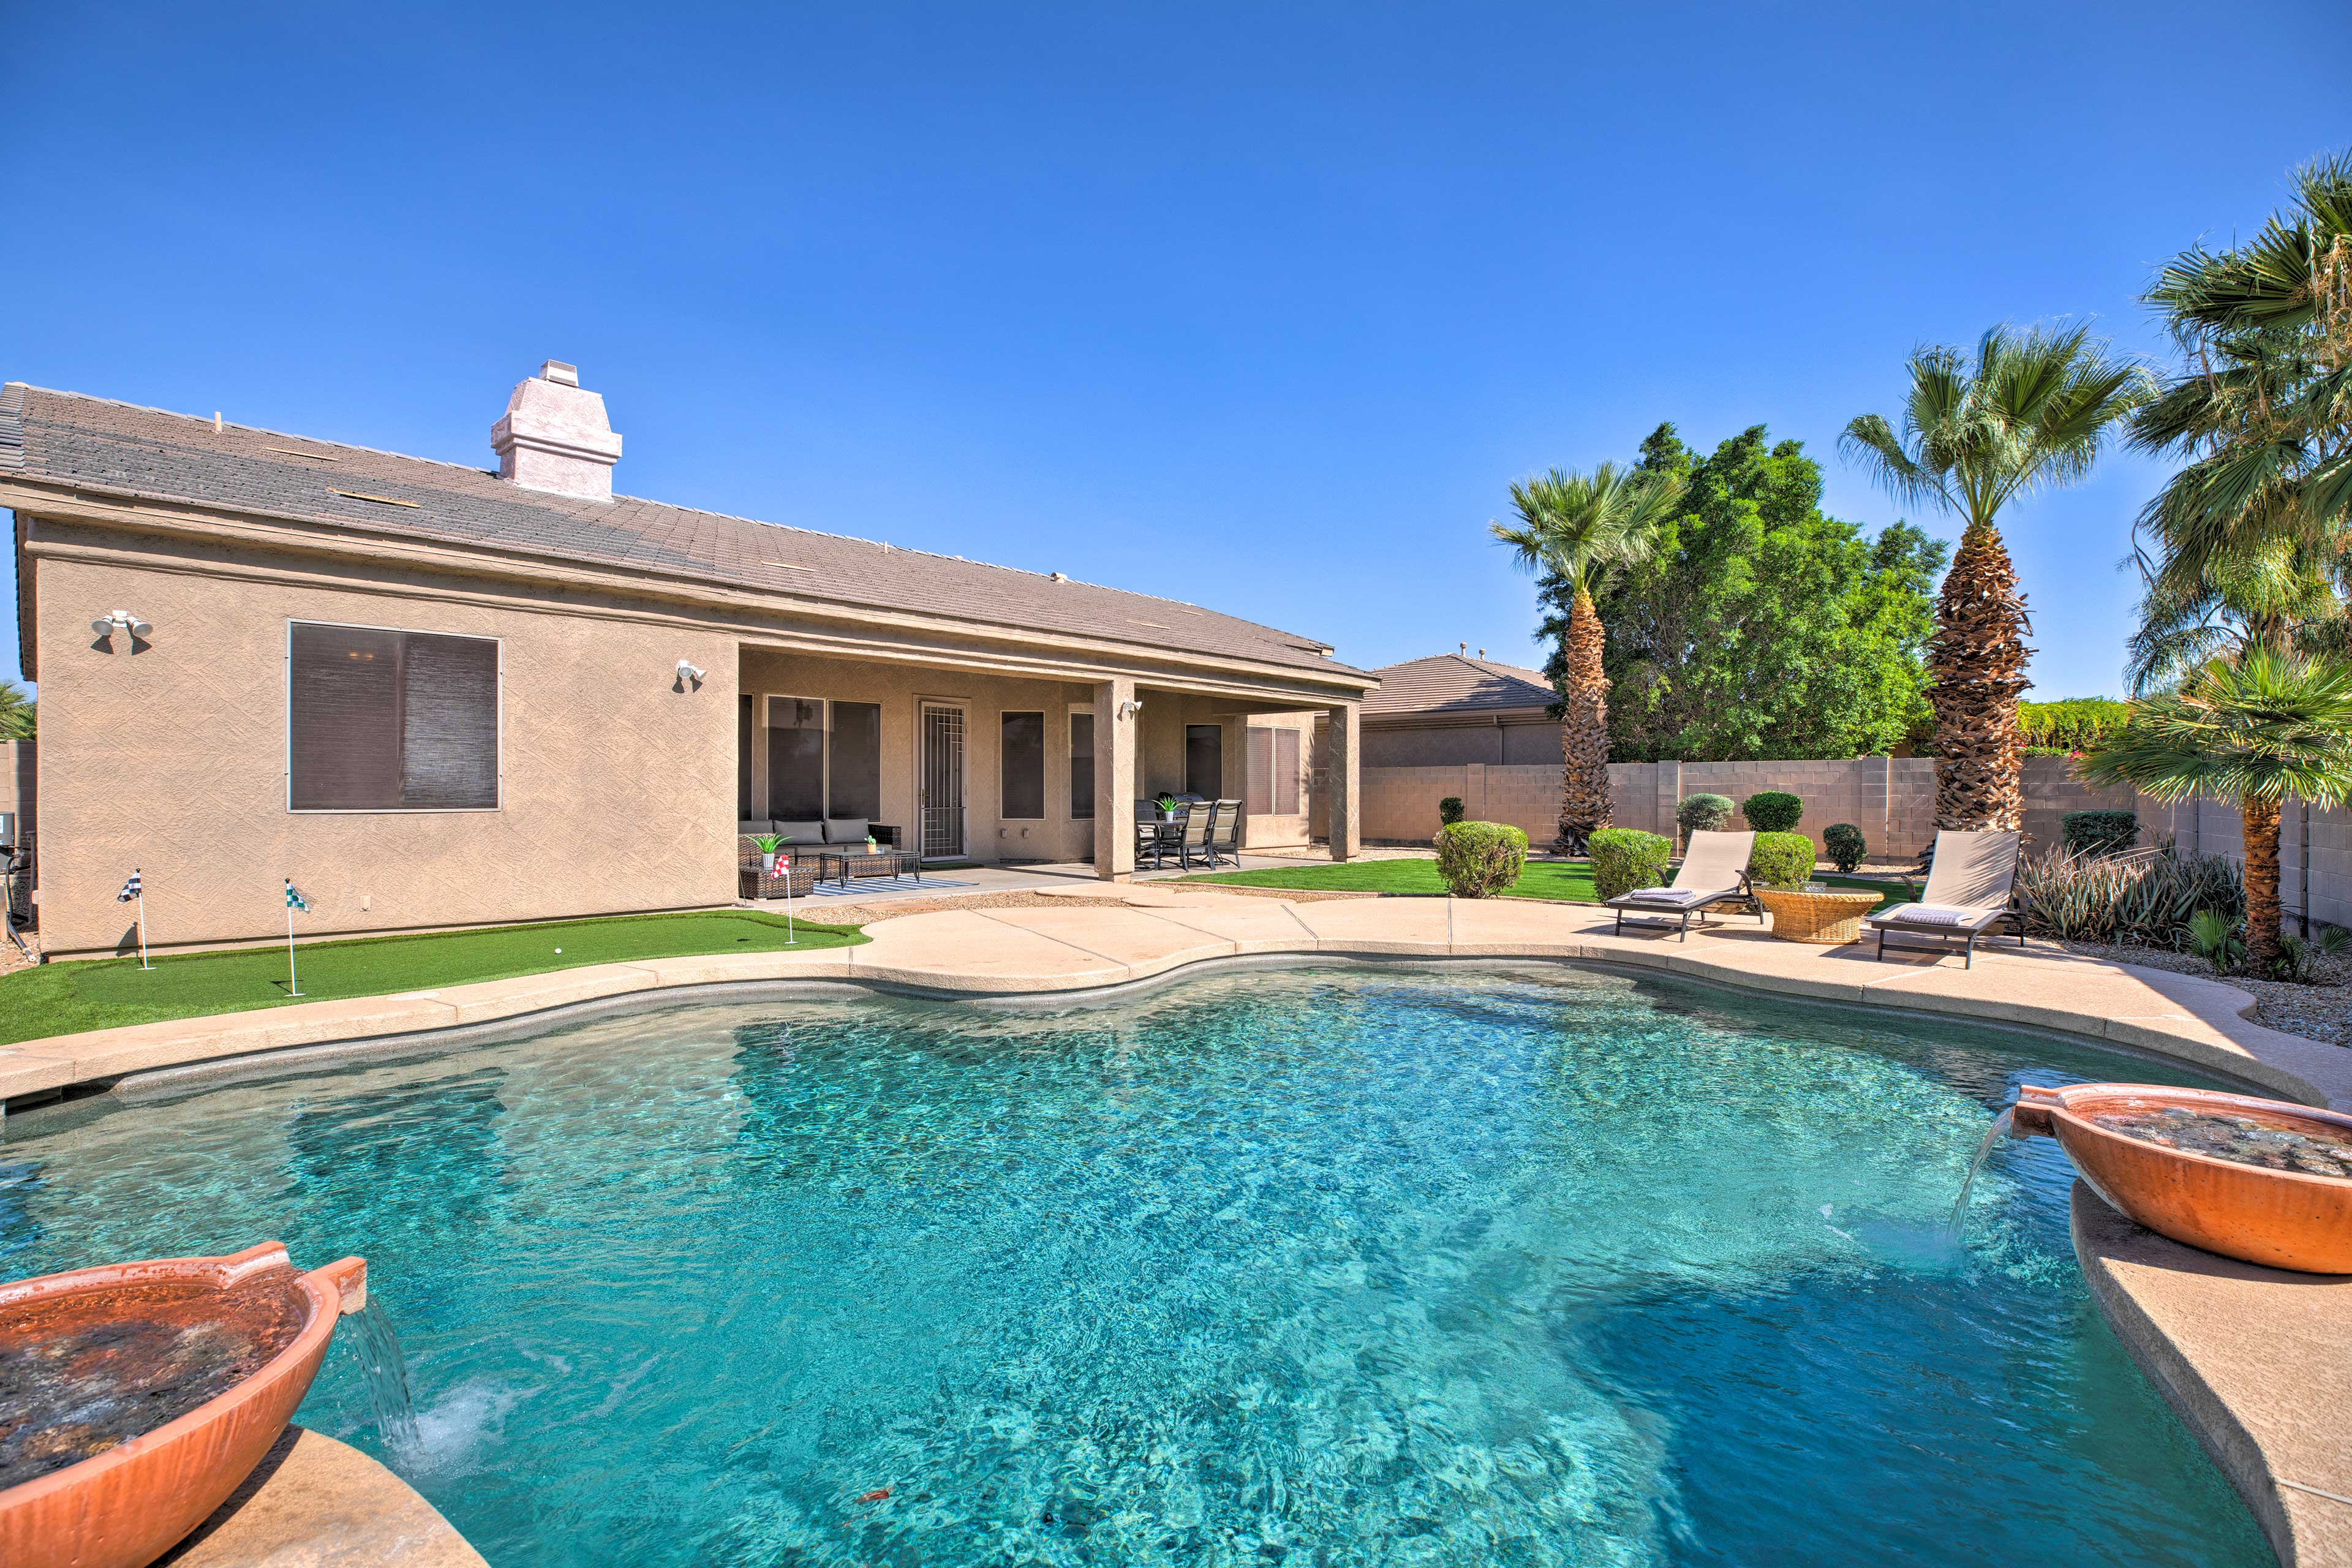 Up to 10 guests can enjoy this serene oasis in Goodyear!